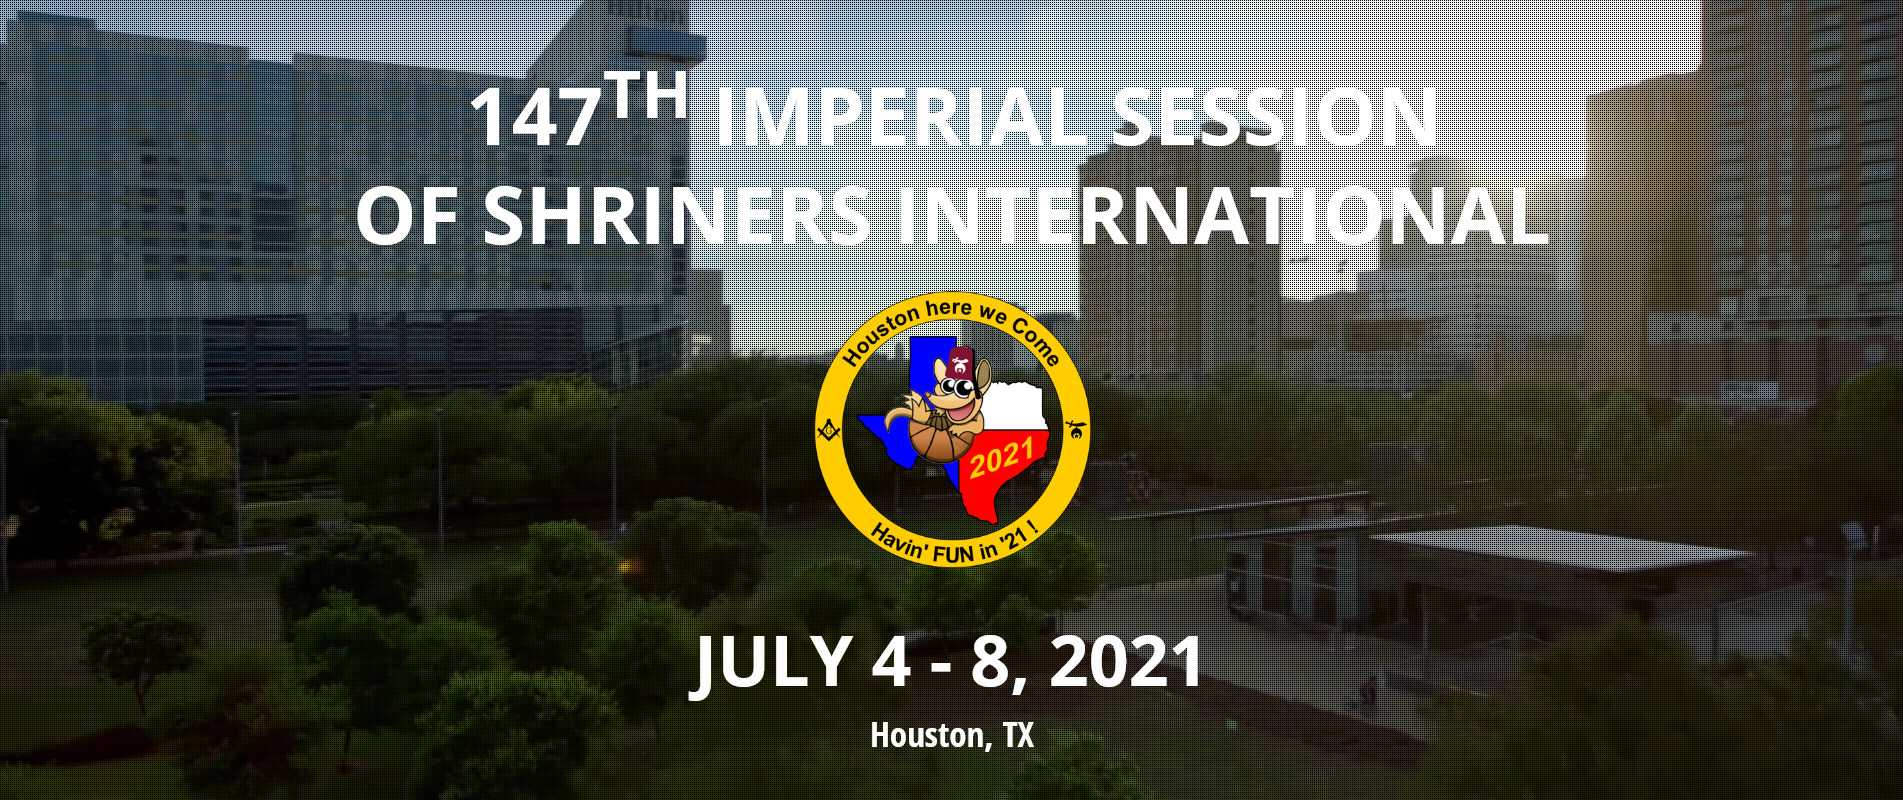 SHRINERS IMPERIAL SESSION